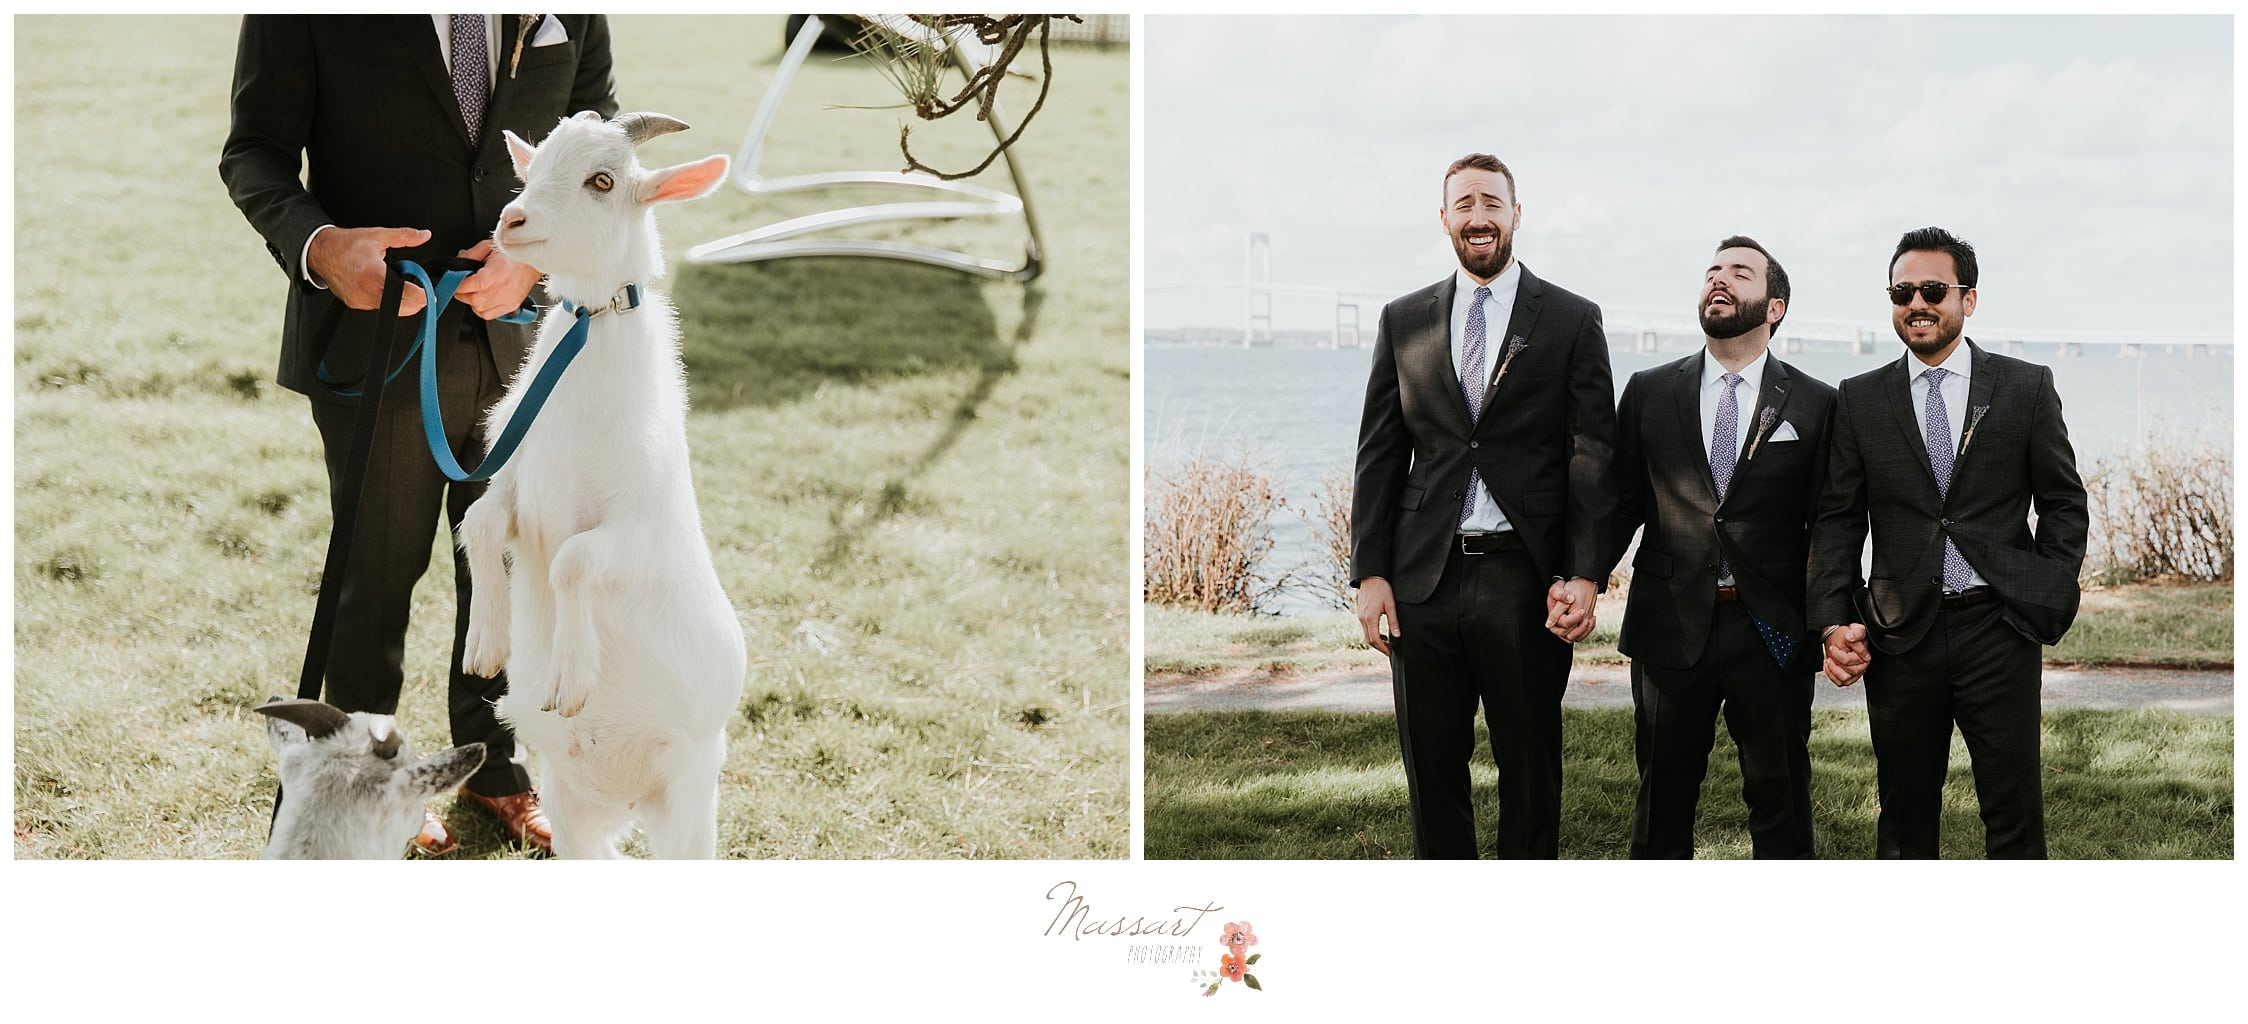 Portraits of the groom, groomsmen and the goats from the island photographed by Massart Photography RI